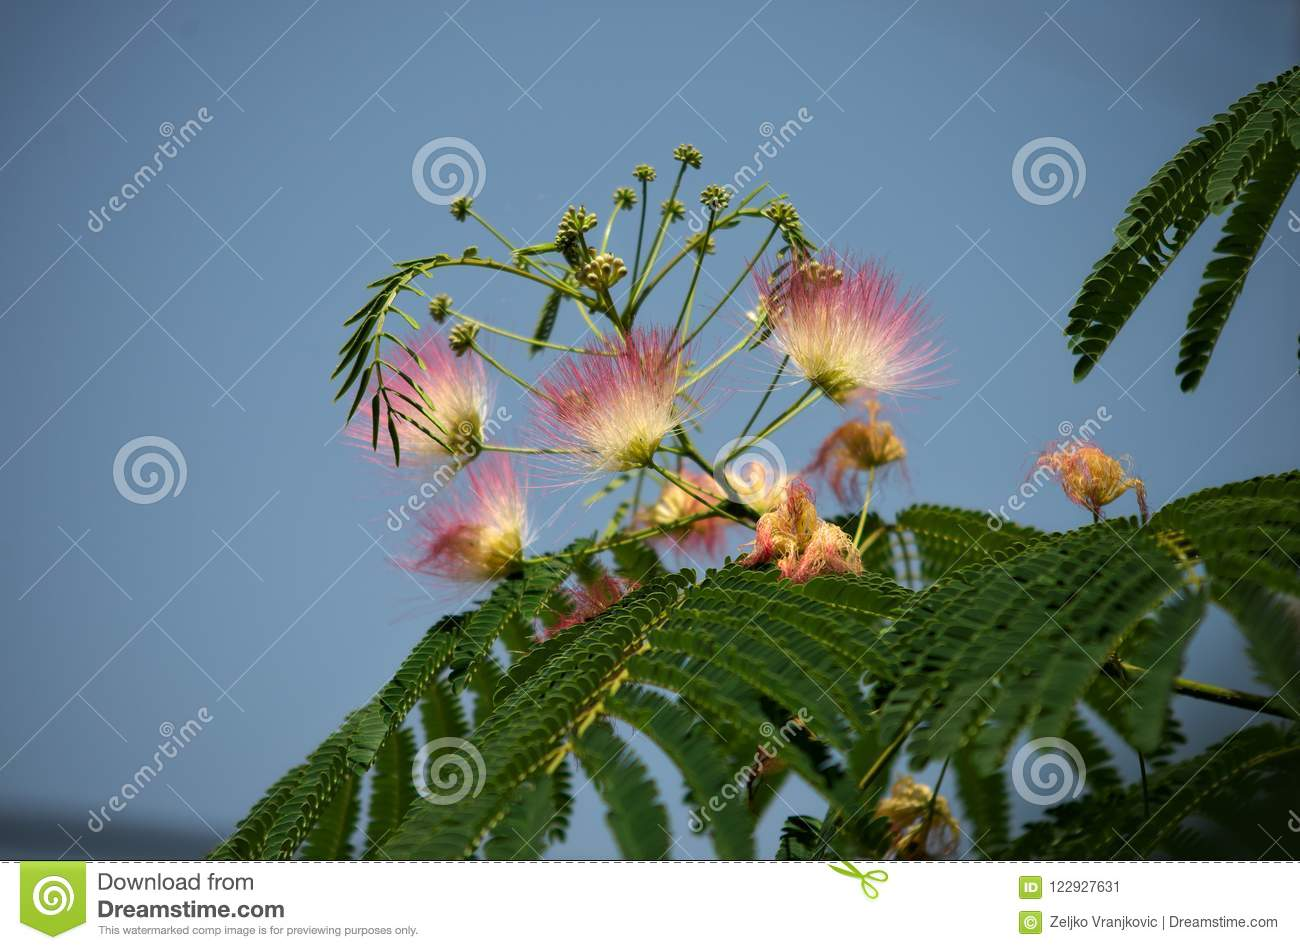 Fern like tree blooming with white and pink flowers closeup stock download fern like tree blooming with white and pink flowers closeup stock image image mightylinksfo